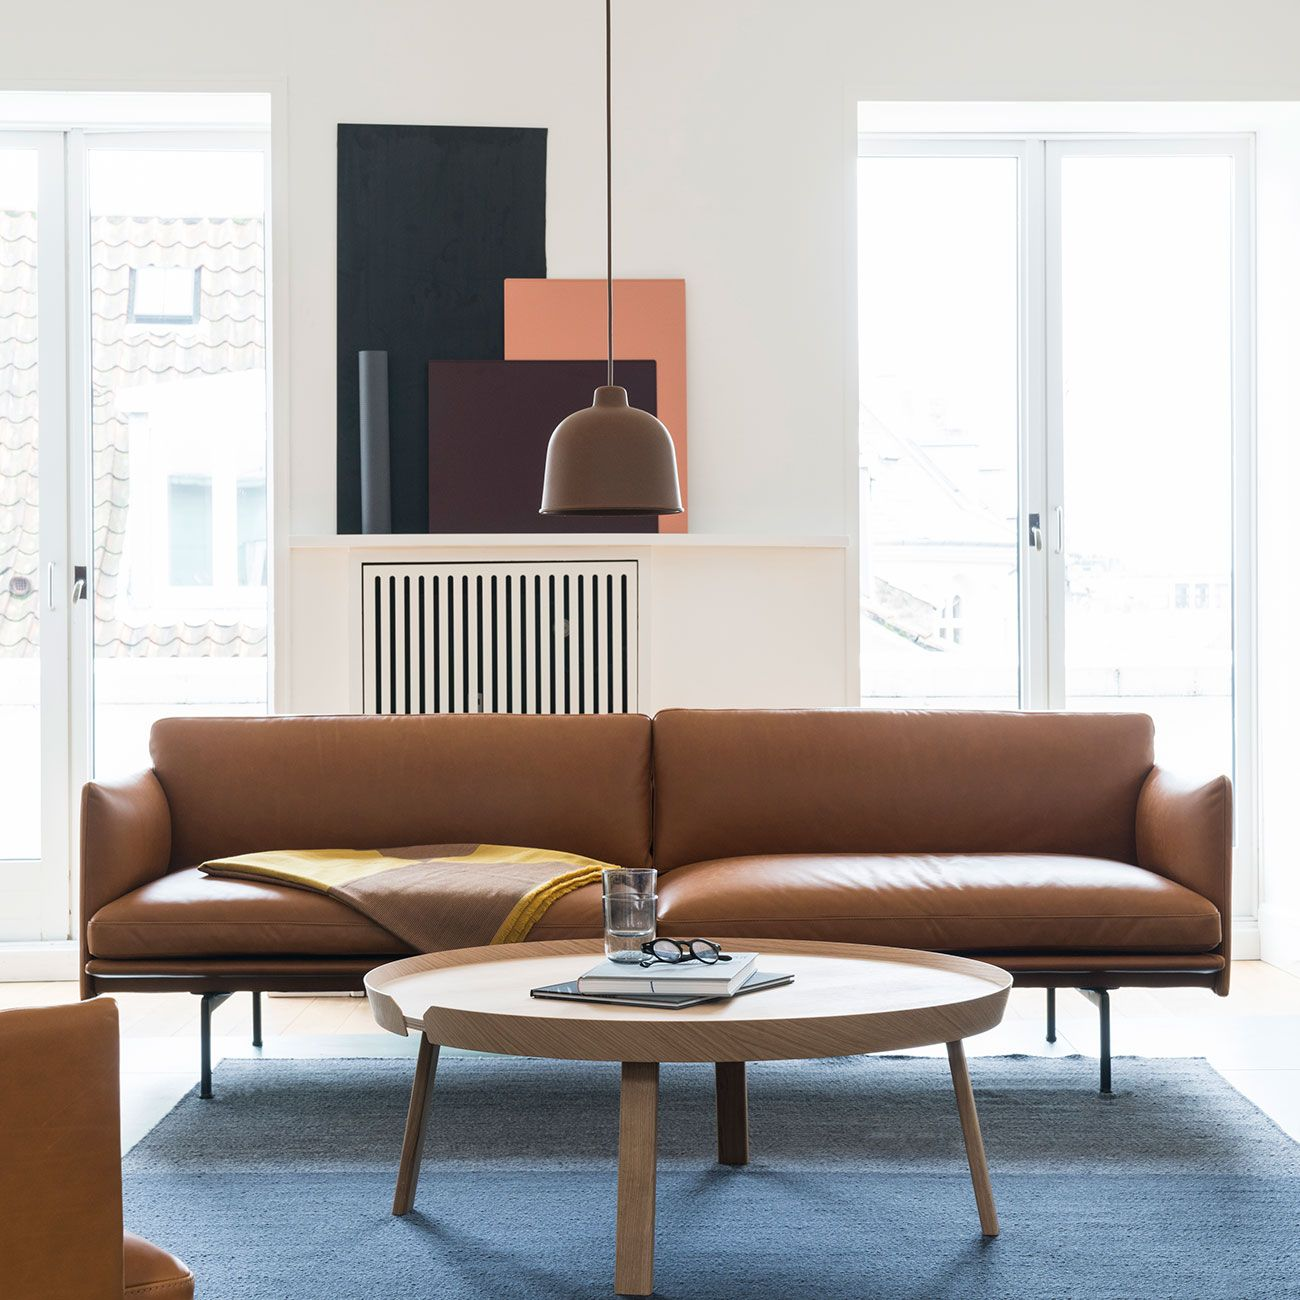 Scandinavian Sofa Interior Inspiration From Muuto The Outline Series Adds New Perspective Bedroom Furniture Design Scandinavian Sofa Design Scandinavian Sofas